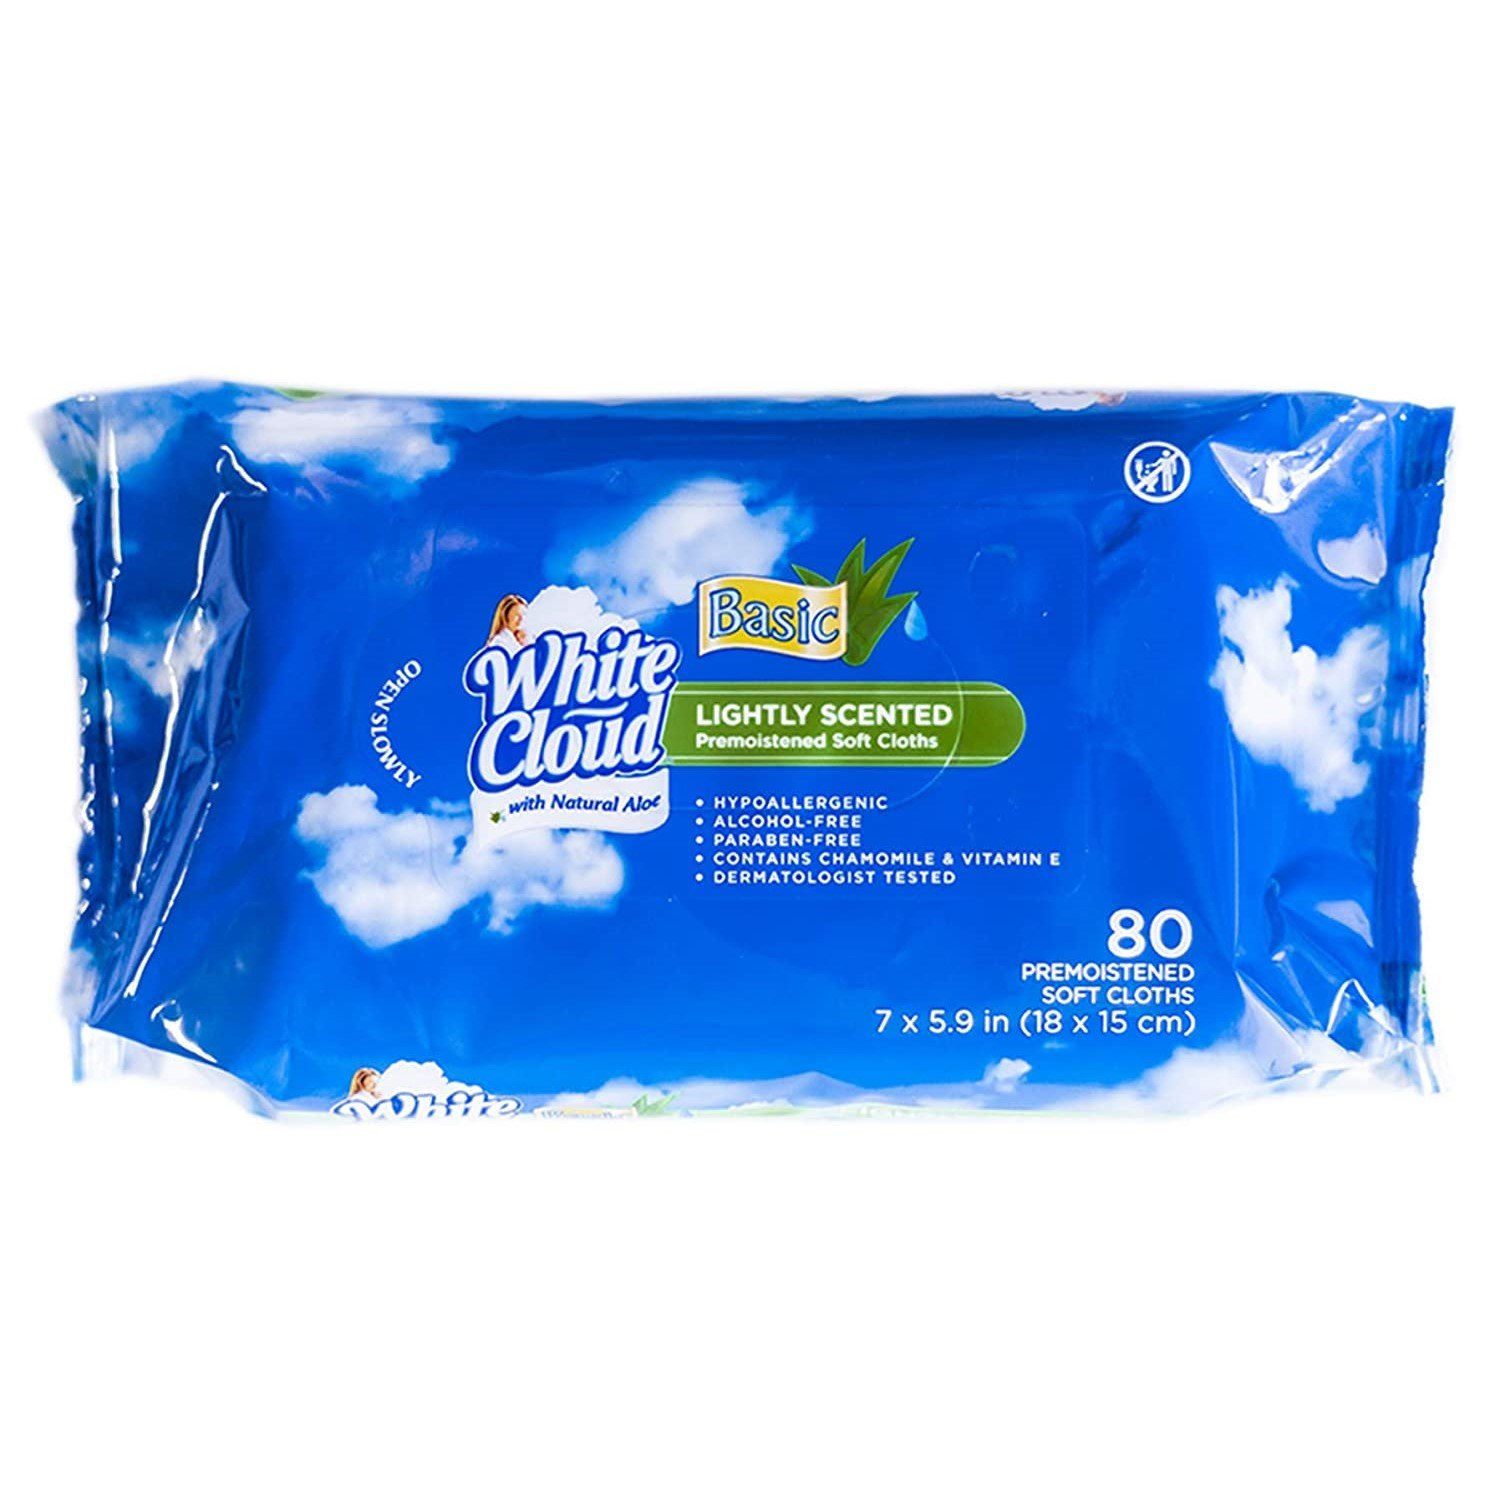 White Cloud Basic Lightly Scented Pre-Moistened Soft Cloths, 80 ct